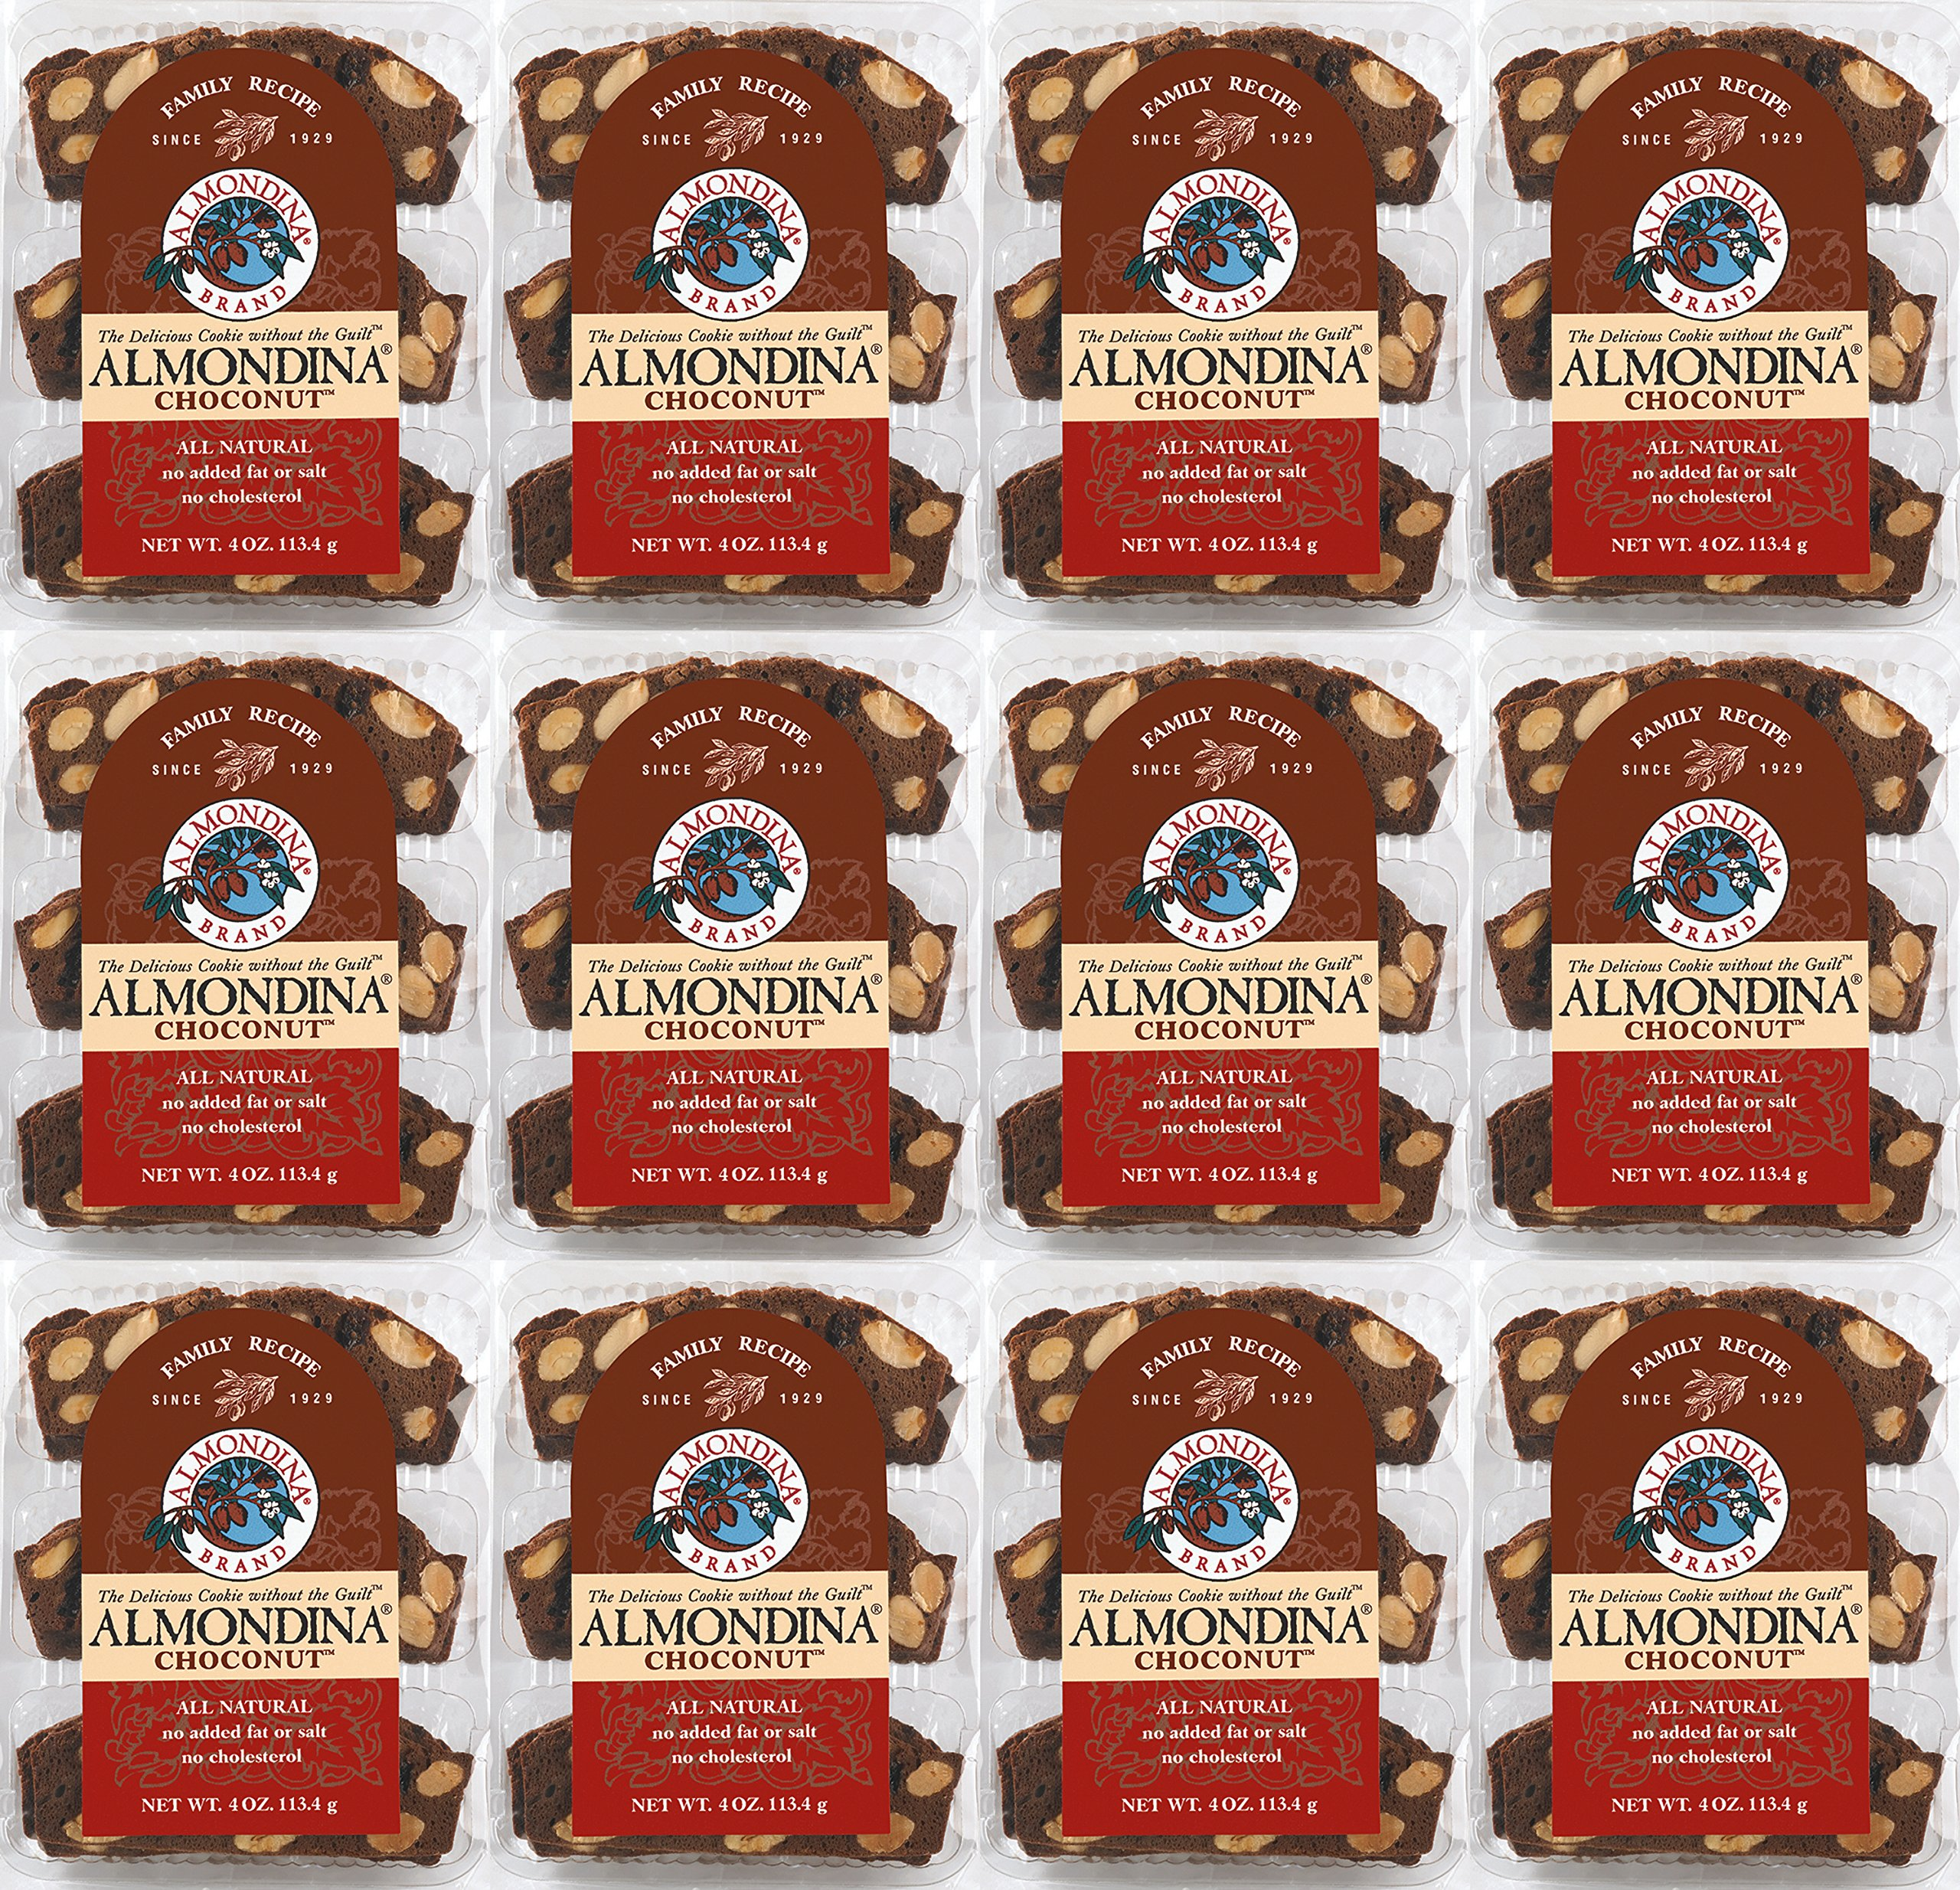 Almondina Biscuits, Choconut, 4 ounce, 12 pack by Almondina